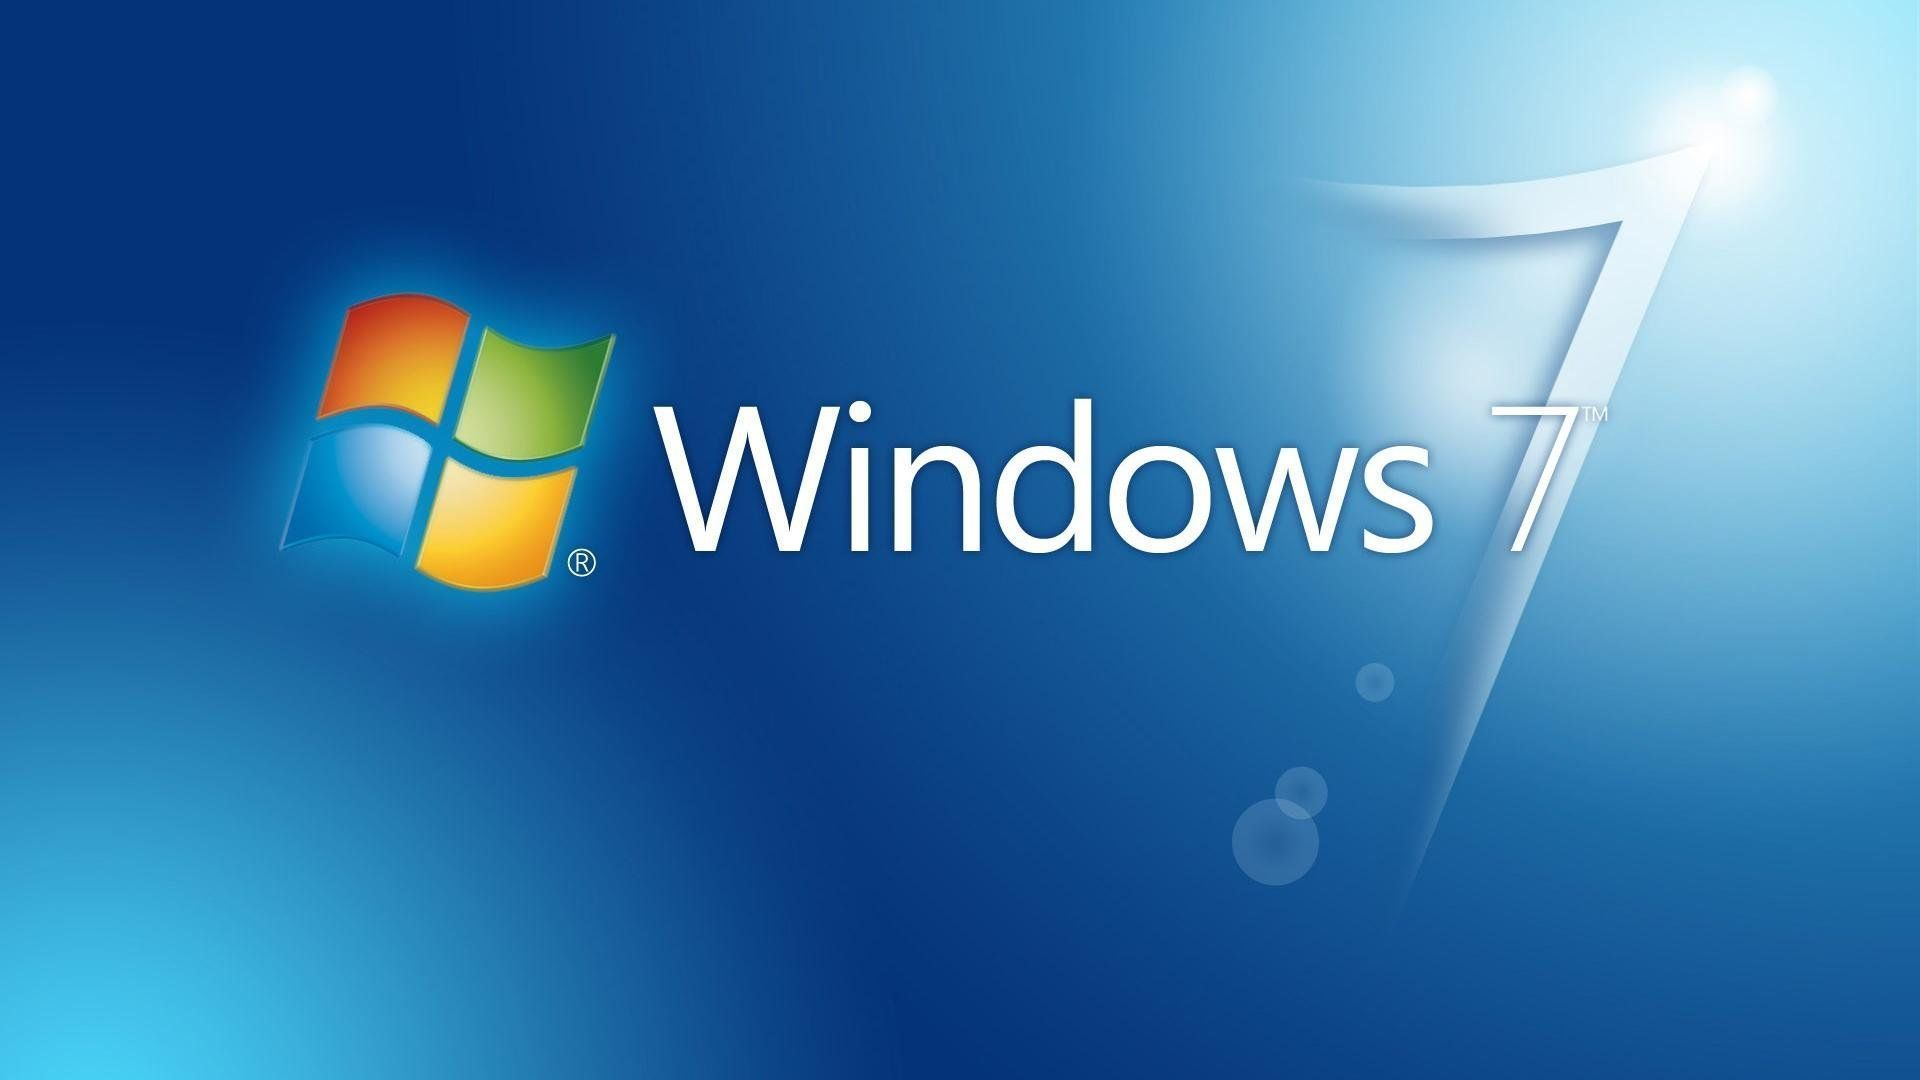 hd windows backgrounds wallpaper 1920a—1080 windows 7 wallpapers download 47 wallpapers